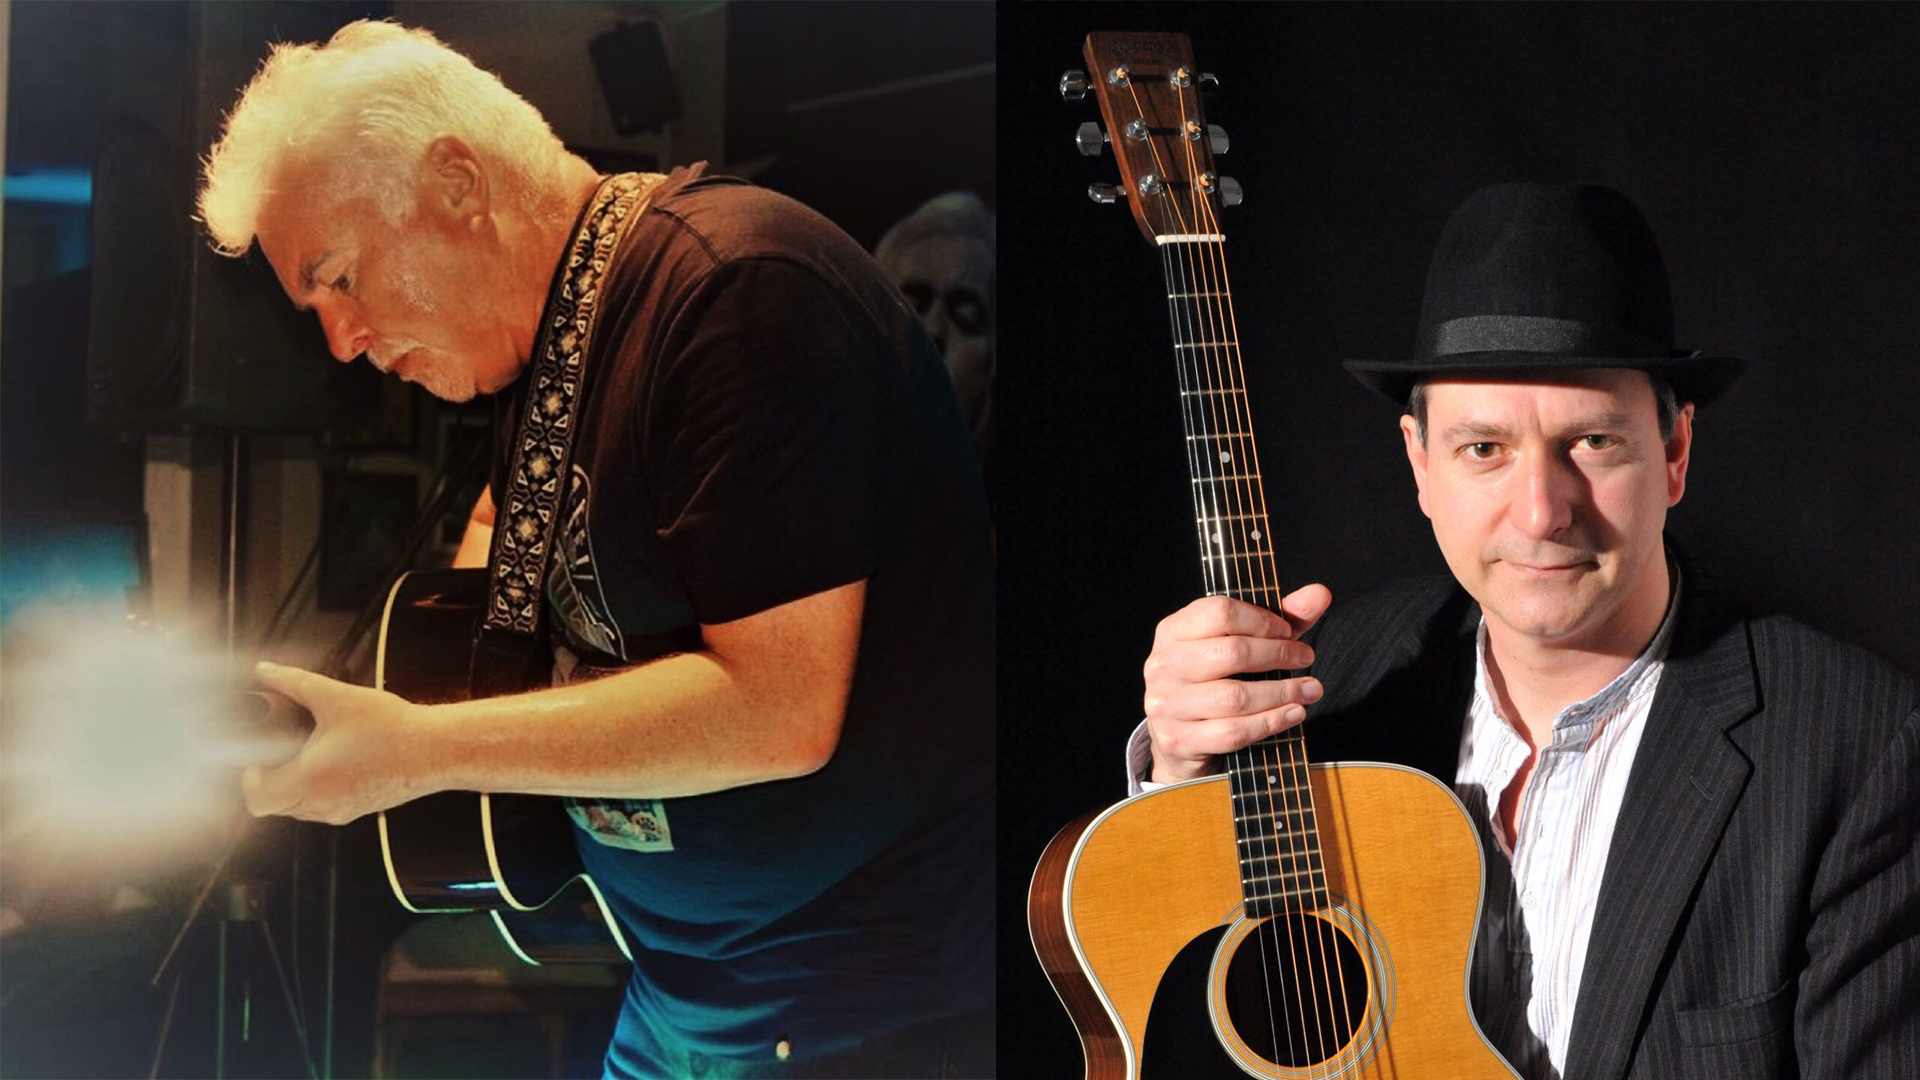 FINGERPICKIN' DOUBLE BILL - WIth MICHAEL WOODS & GED WILSONBLUESDOOR 7PM / MUSIC 8.30PM£10 / £9 / £0 (BK)EMAIL TO RESERVE